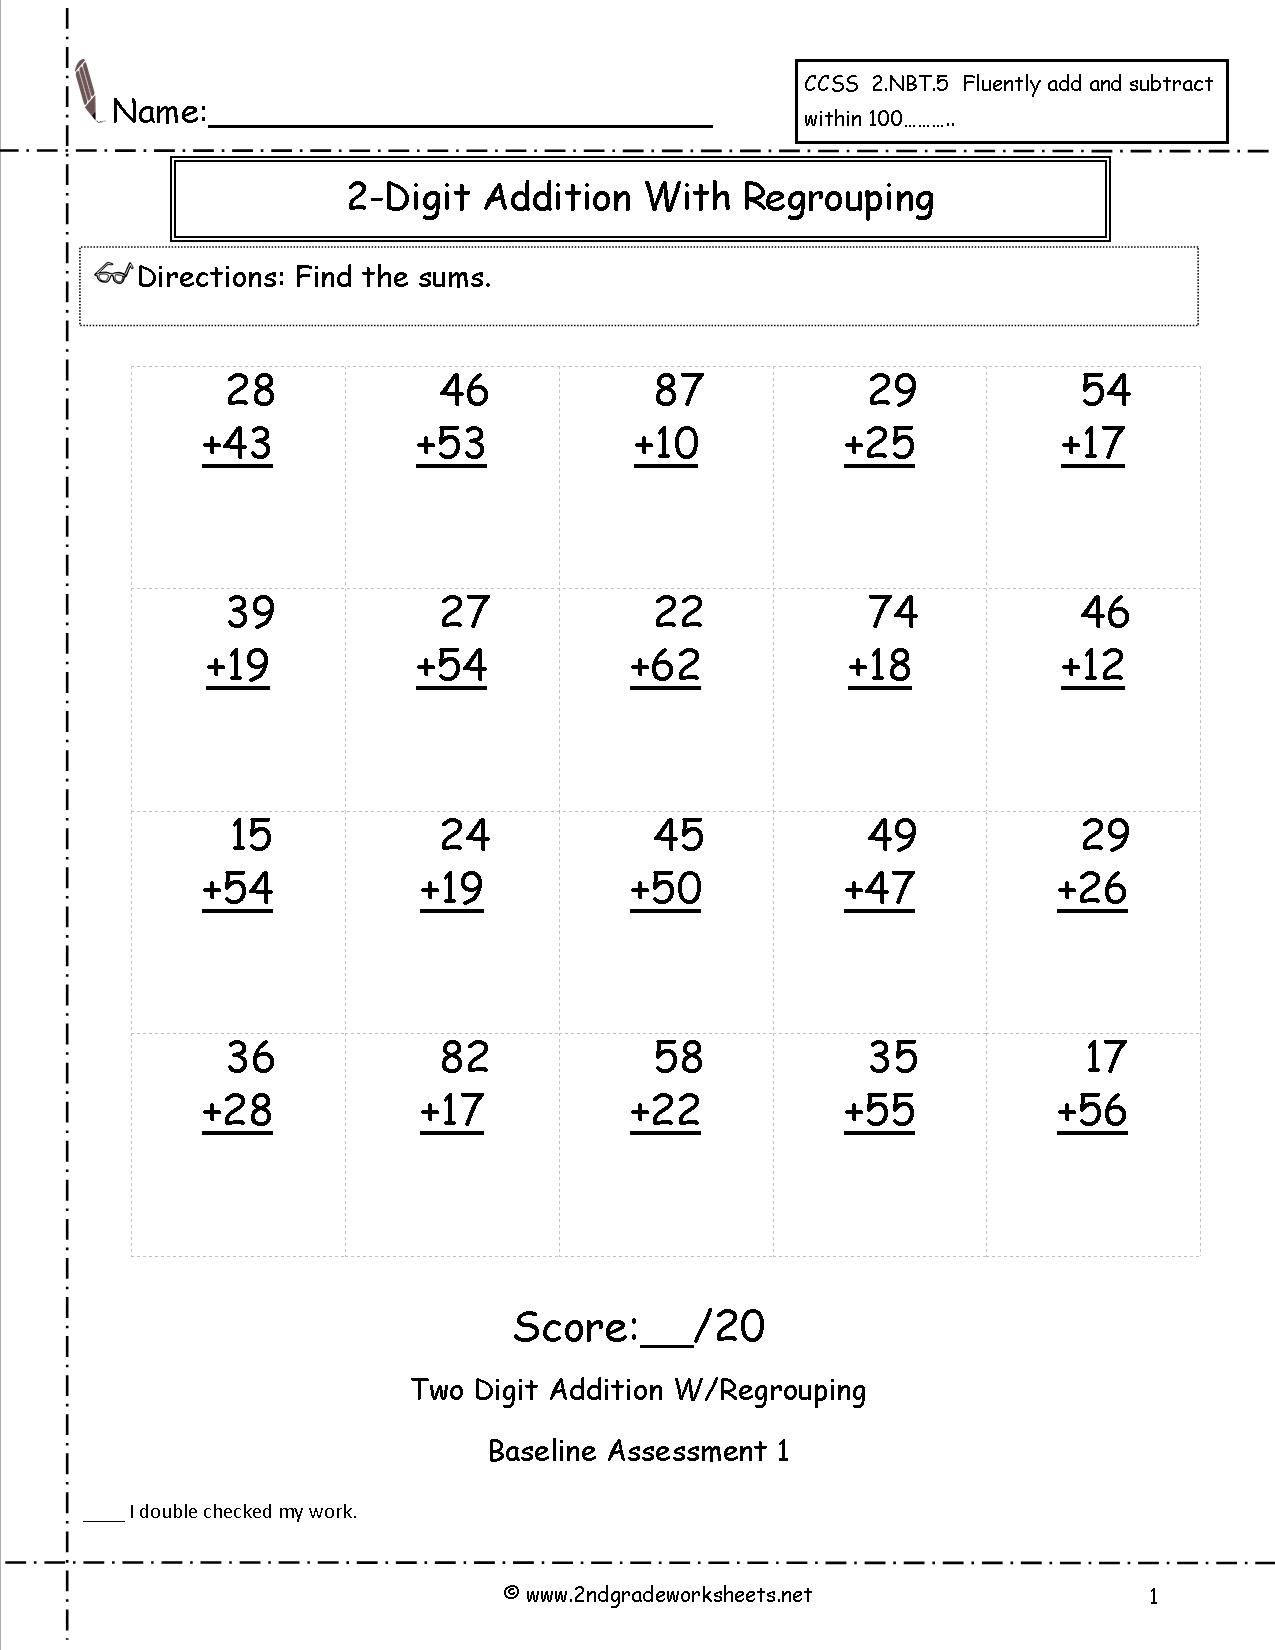 Worksheets Addition With Regrouping Worksheets two digit addition with regrouping assessment love to learn worksheets and without regrouping